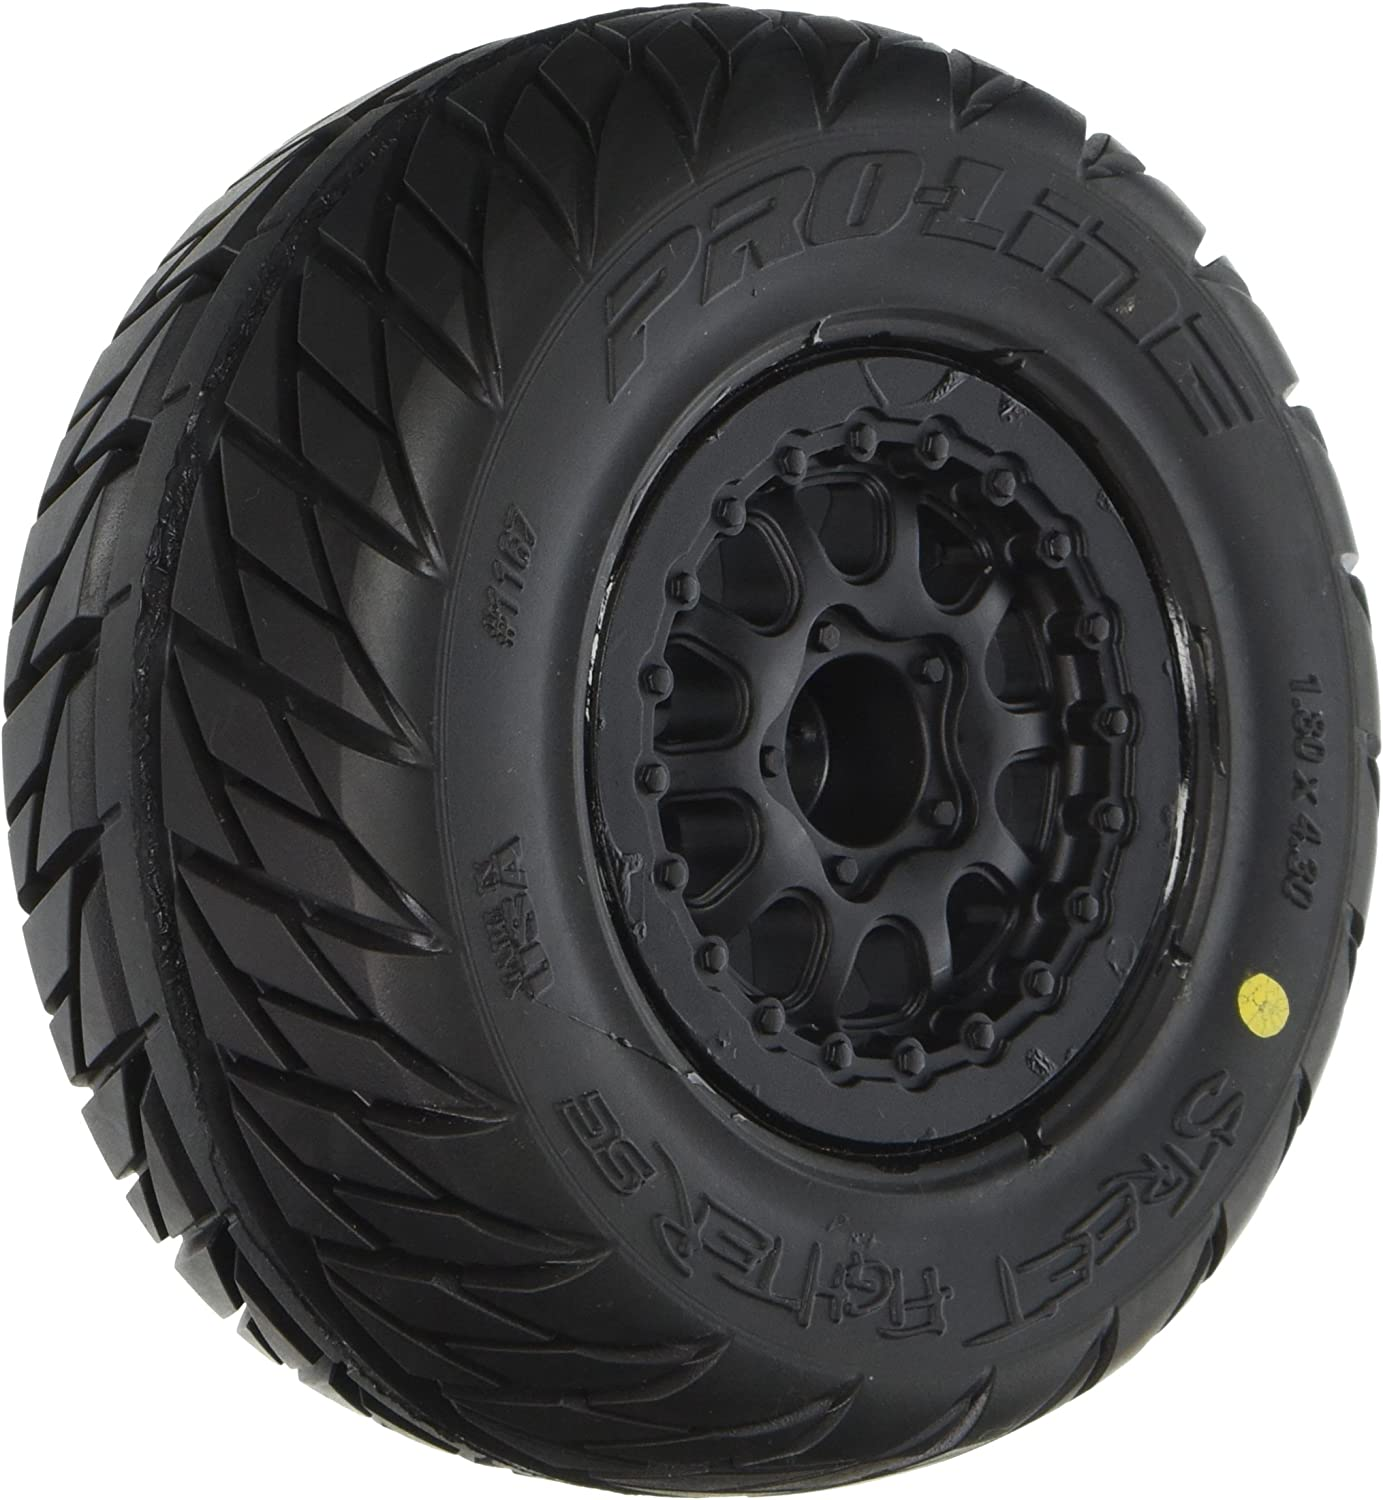 """Pro-Line Racing 1167-17 Street Fighter SC 2.2""""/3.0"""" Tires Mounted on Renegade Black Wheels"""